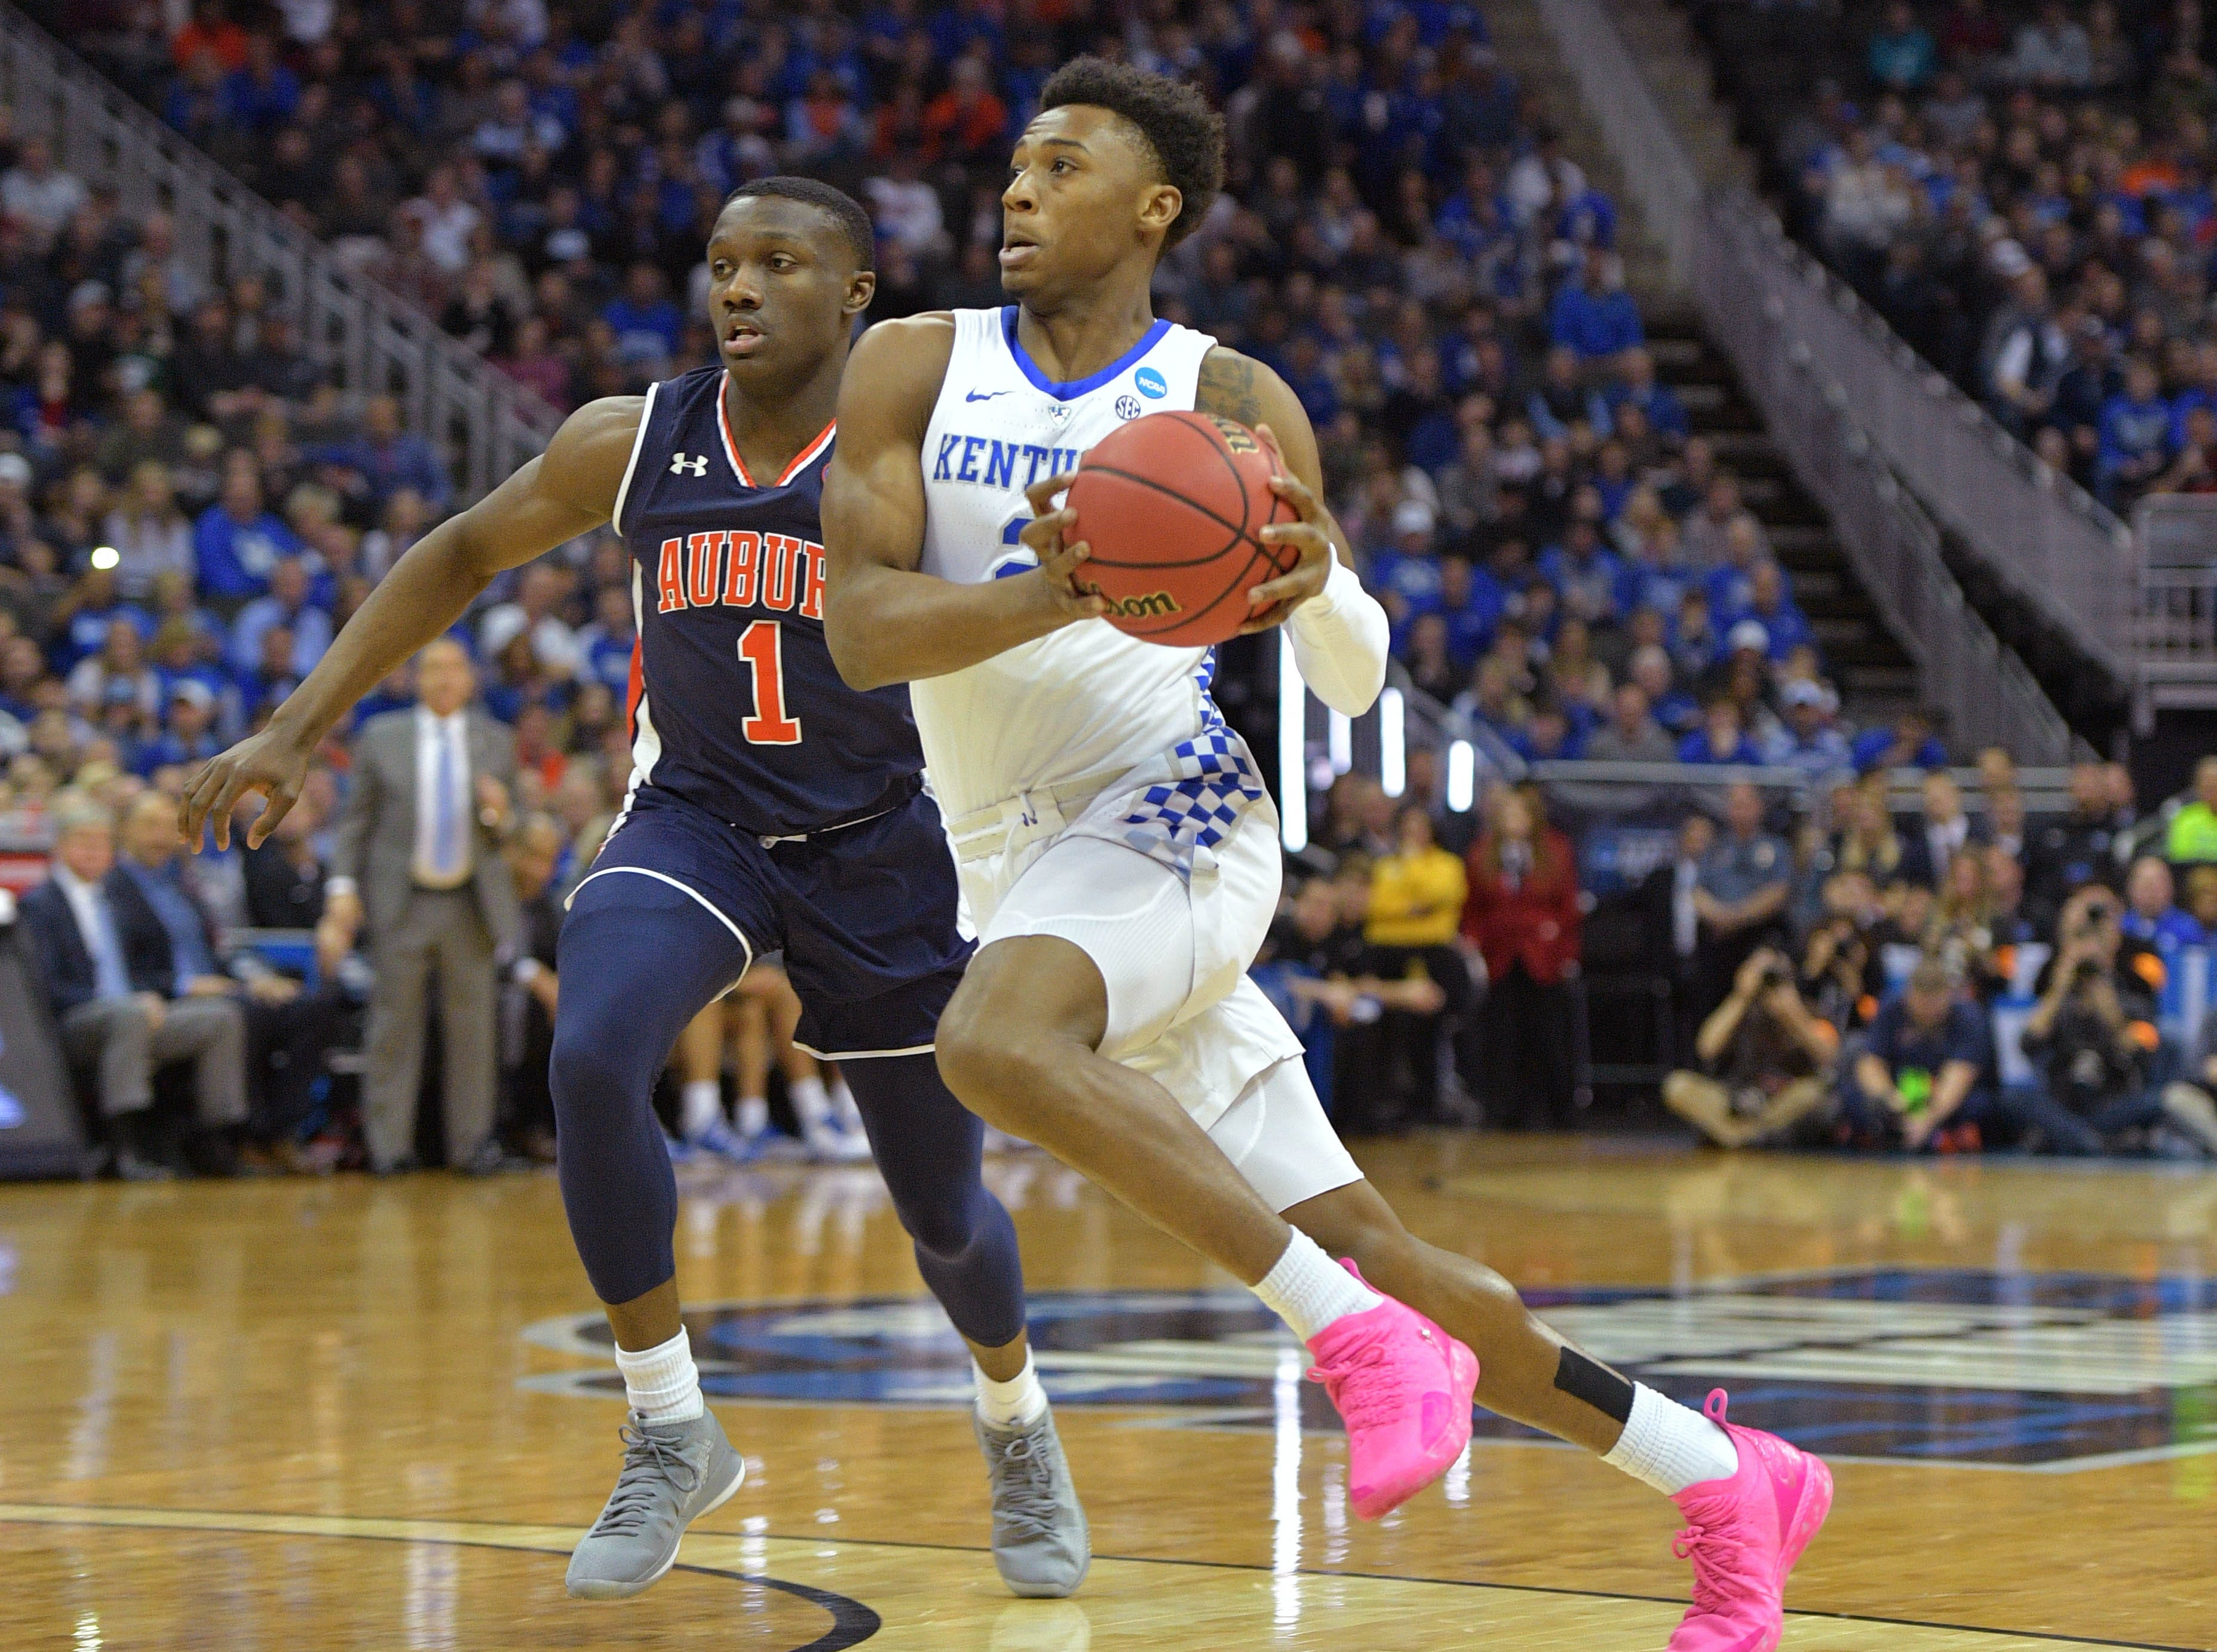 Mar 31, 2019; Kansas City, MO, United States; Kentucky Wildcats guard Ashton Hagans (2) drives past Auburn Tigers guard Jared Harper (1) during the first half in the championship game of the midwest regional of the 2019 NCAA Tournament at Sprint Center. Mandatory Credit: Denny Medley-USA TODAY Sports